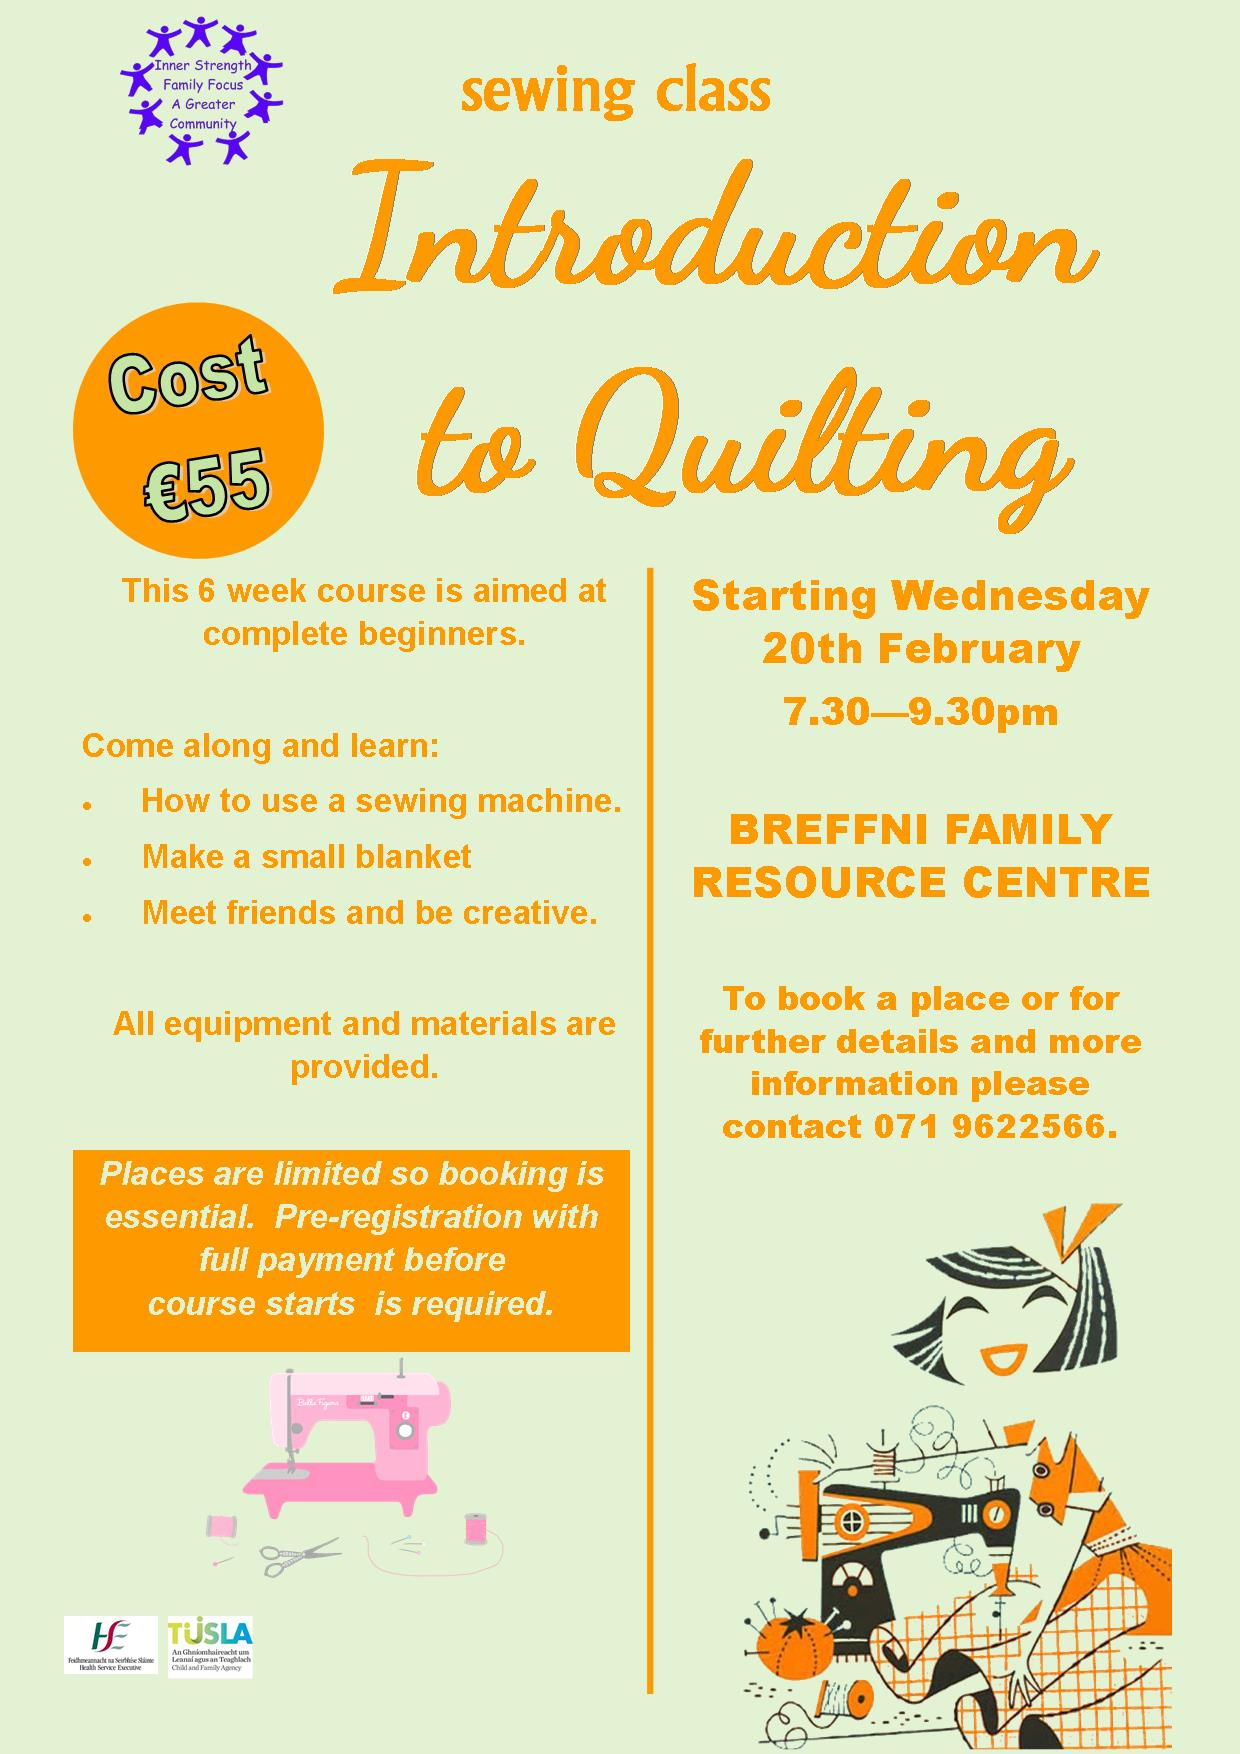 MyCarrick Event | Breffni Family Resource Centre : Introduction to Quilting